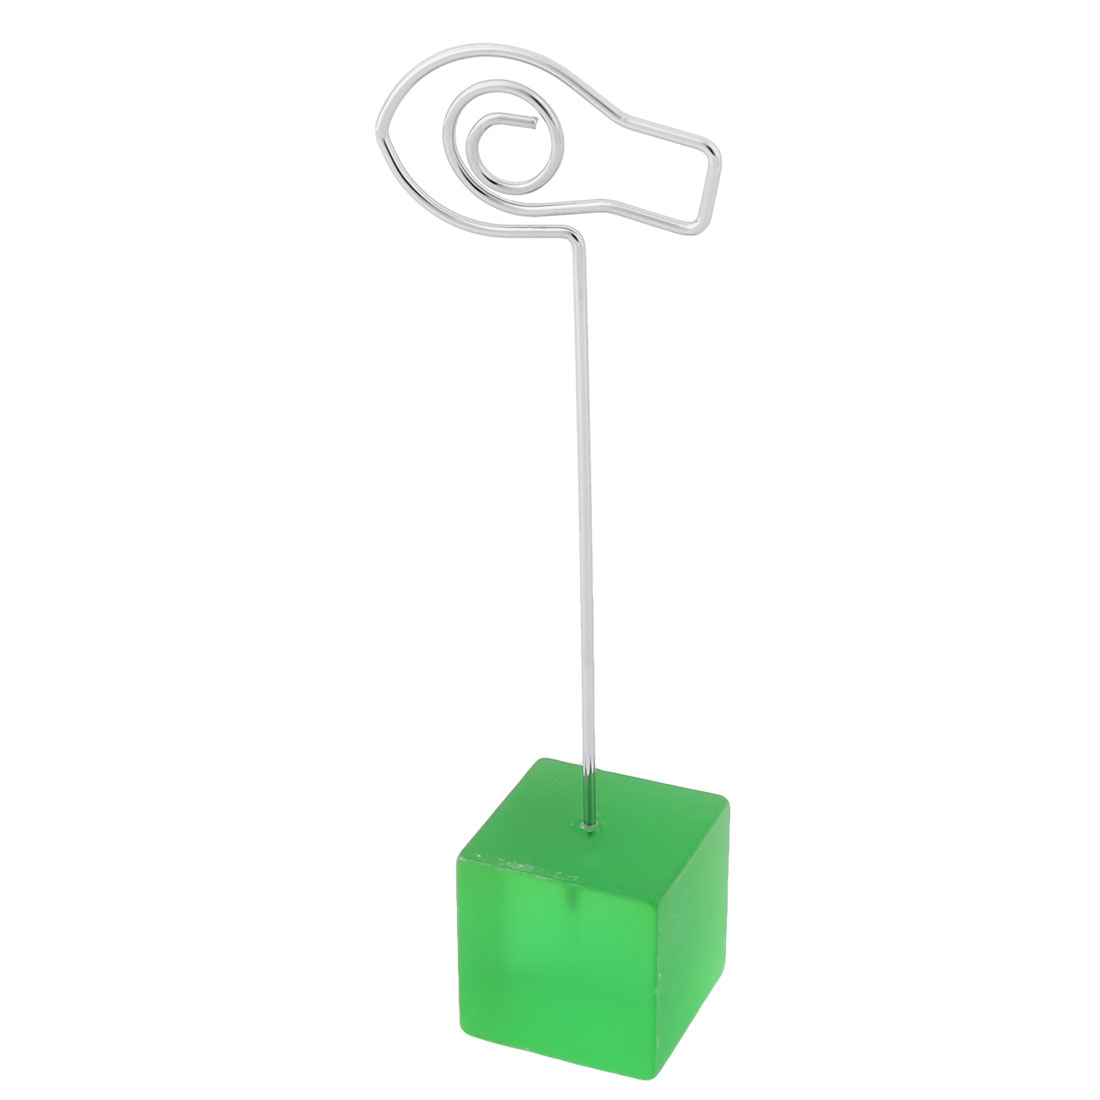 Household Resin Cube Shaped Base Fish Design Clamp Note Paper Memo Clip Green